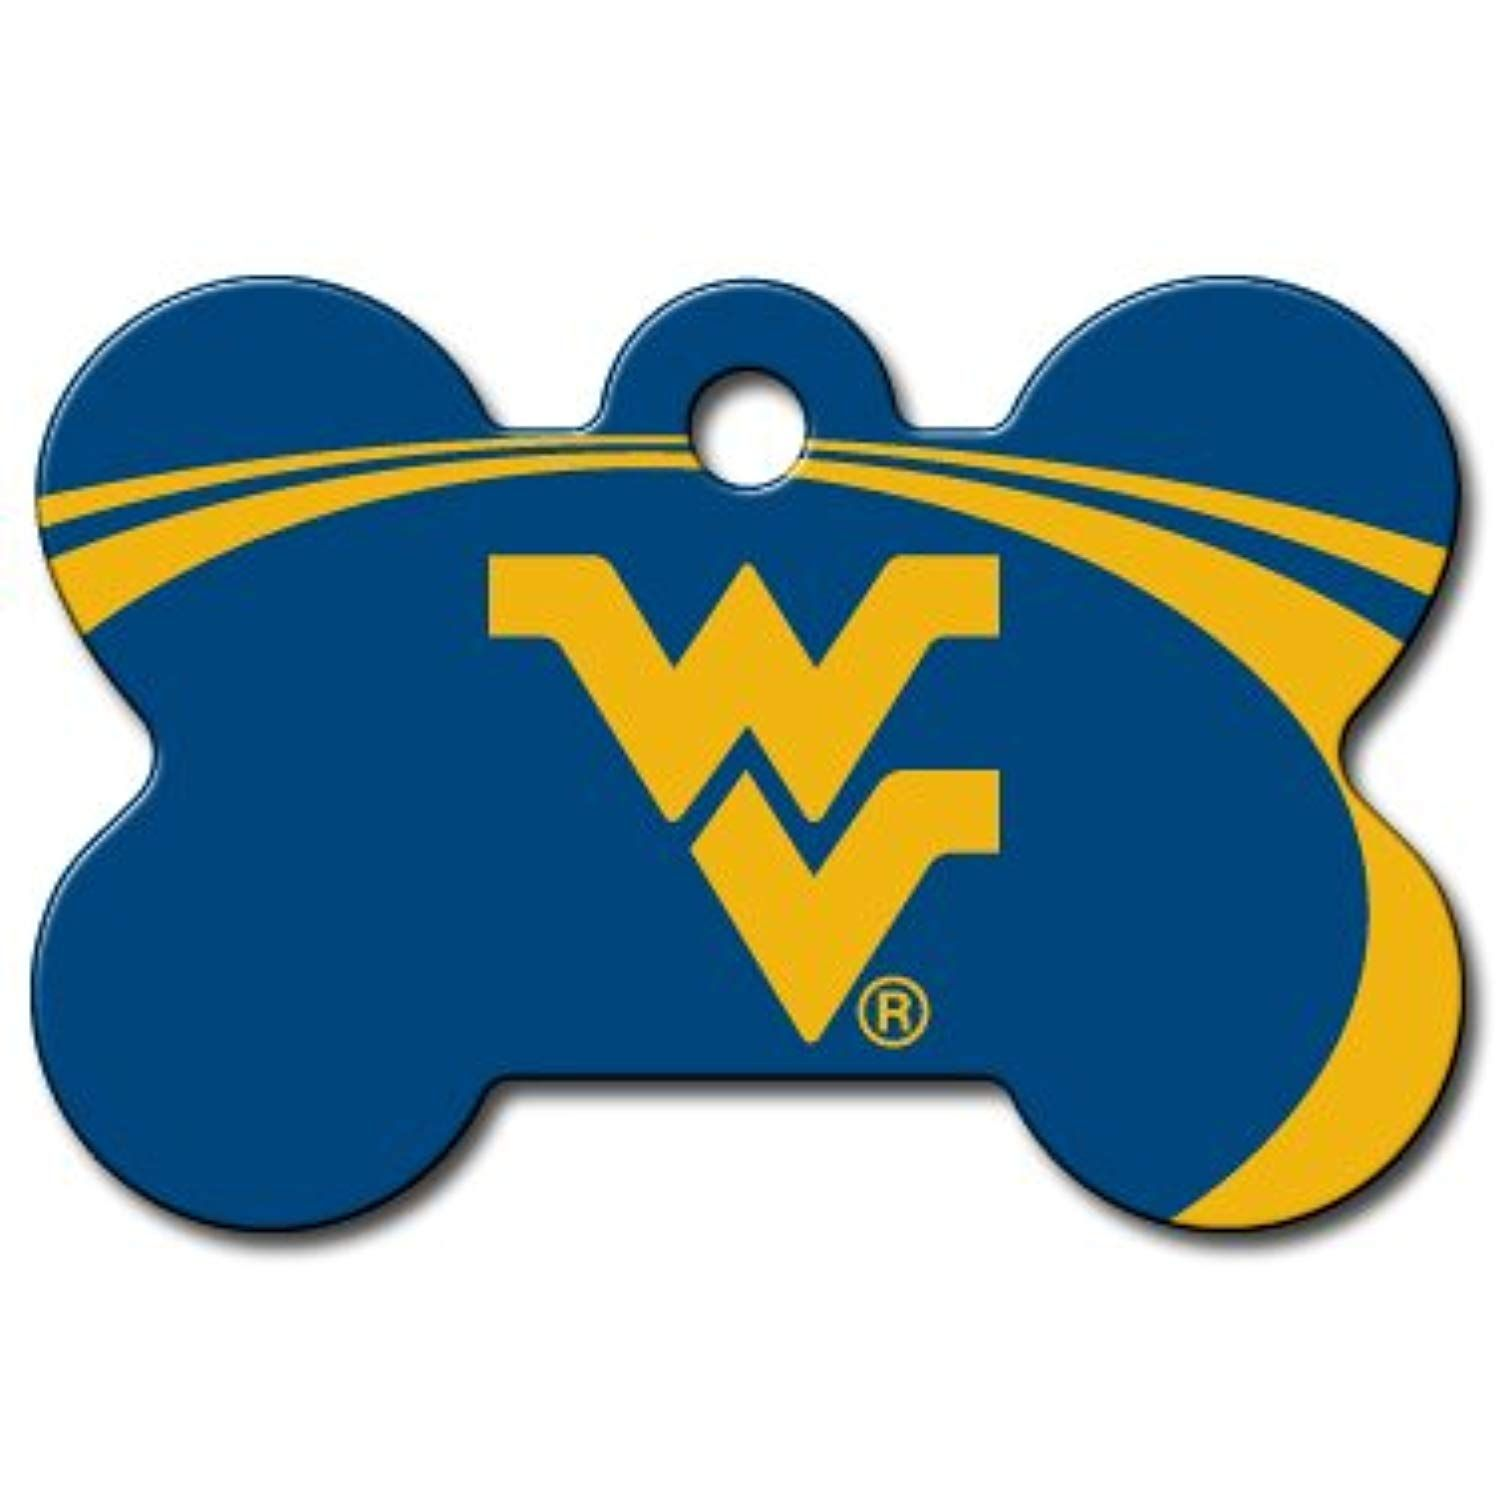 Personalized Laser Engraved 15 X 1 Inch West Virginia Mountaineers